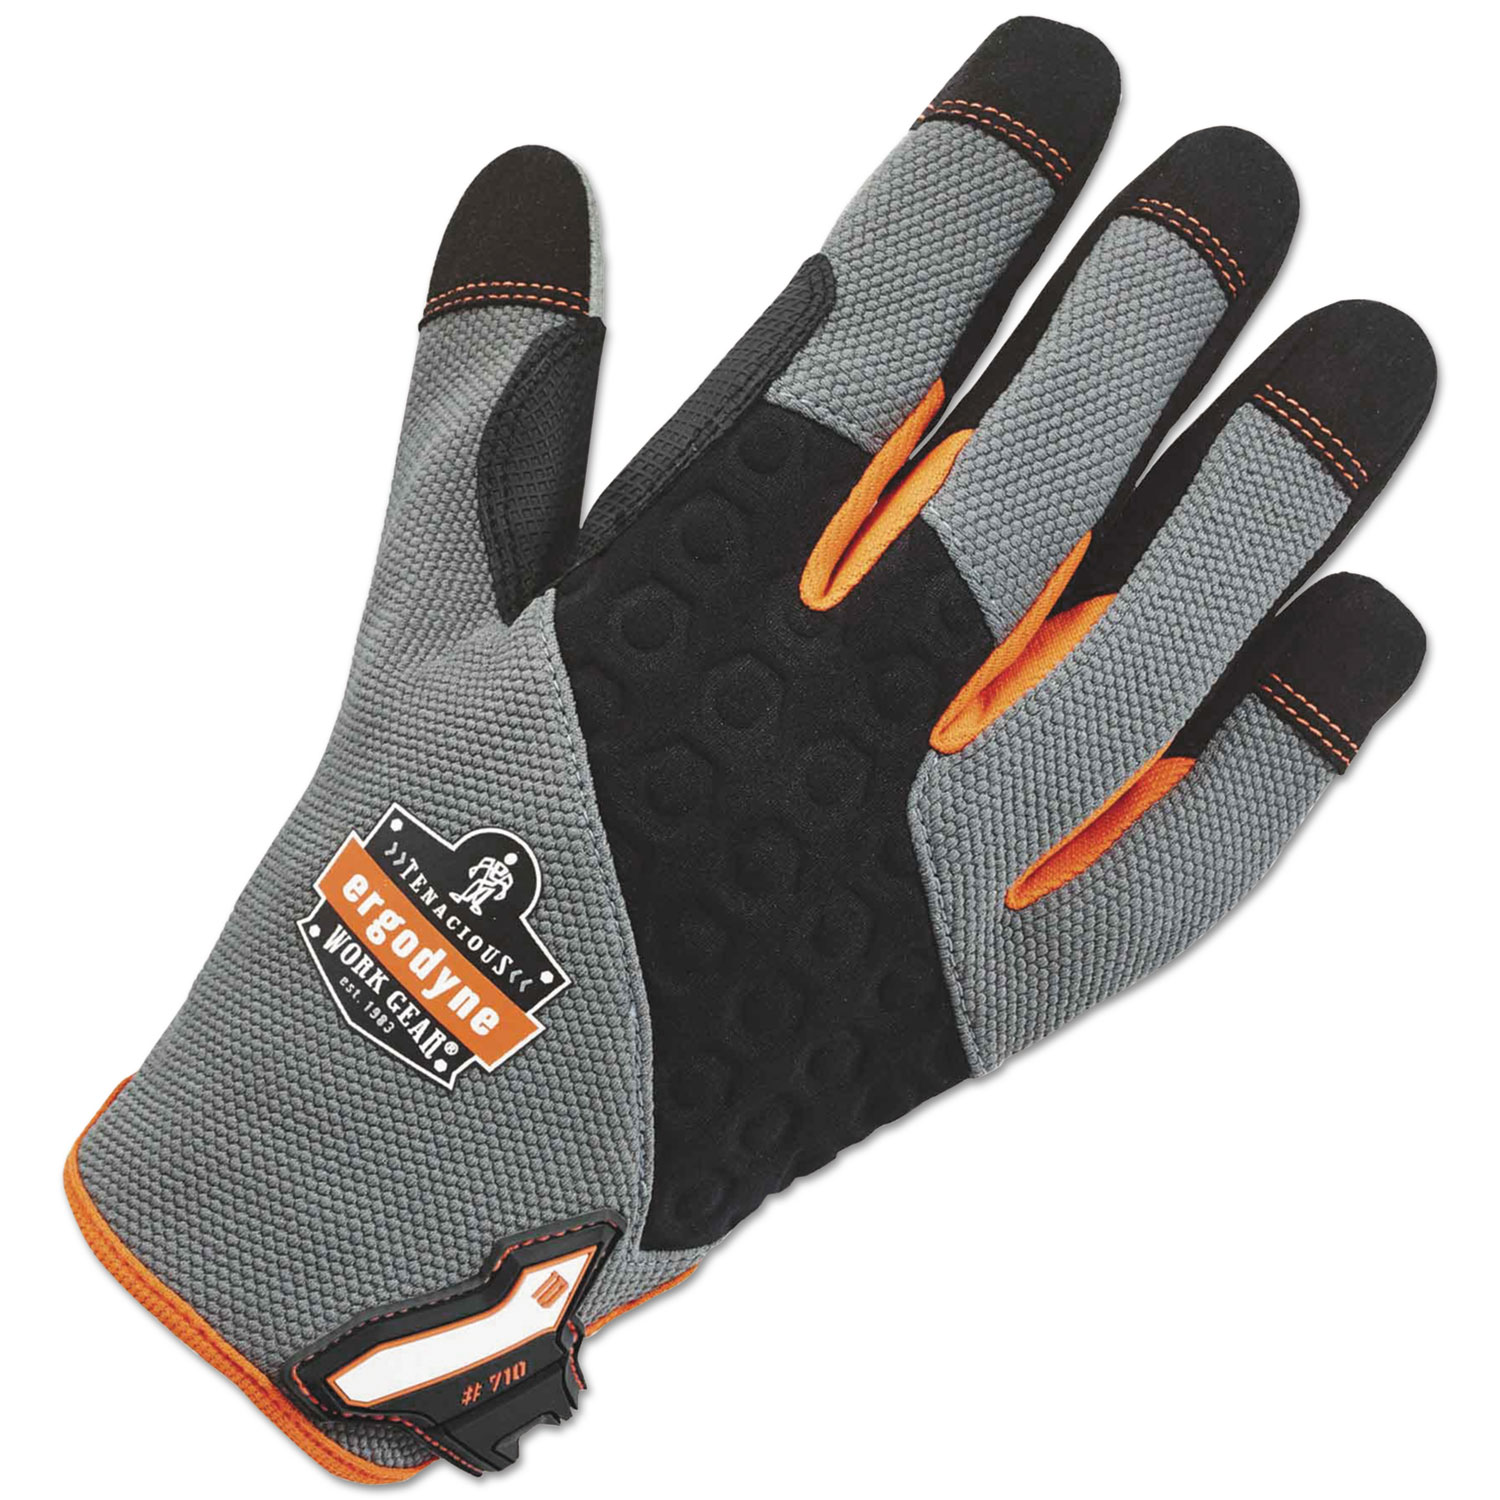 ergodyne ProFlex 710 Heavy-Duty Utility Gloves, Gray, Large, 1 Pair